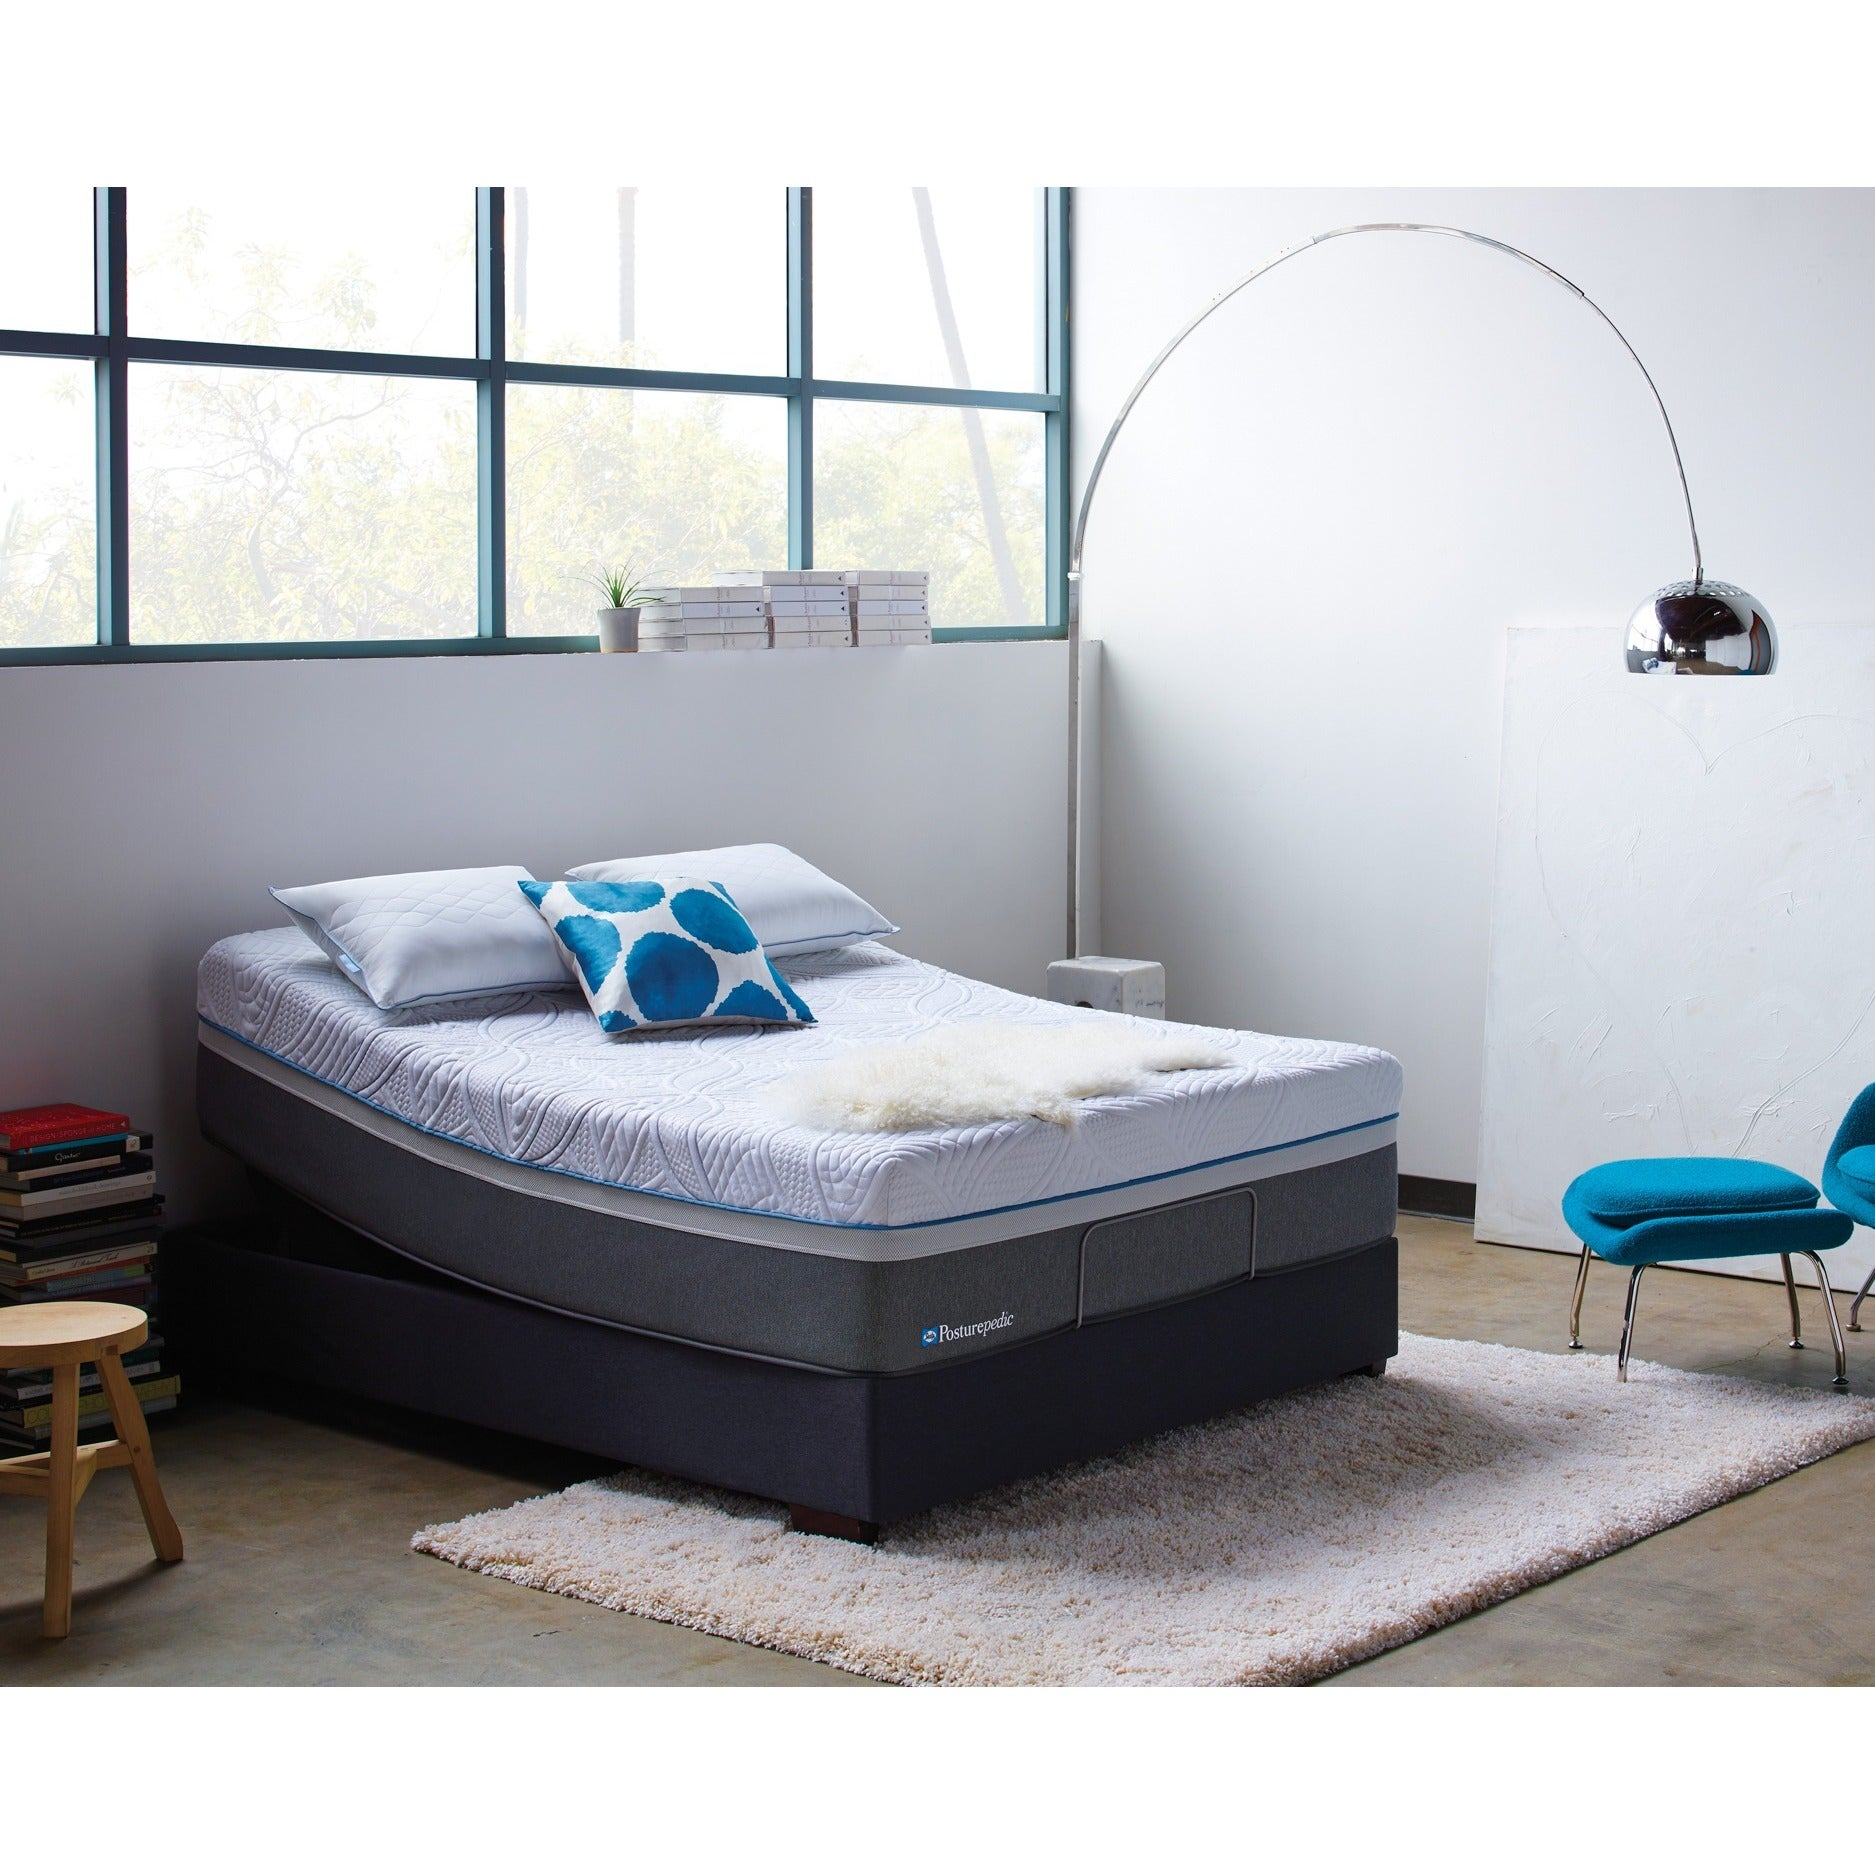 Sealy Posturepedic Hybrid Copper Cushion Firm King Size Mattress Free Shipping Today 12520308